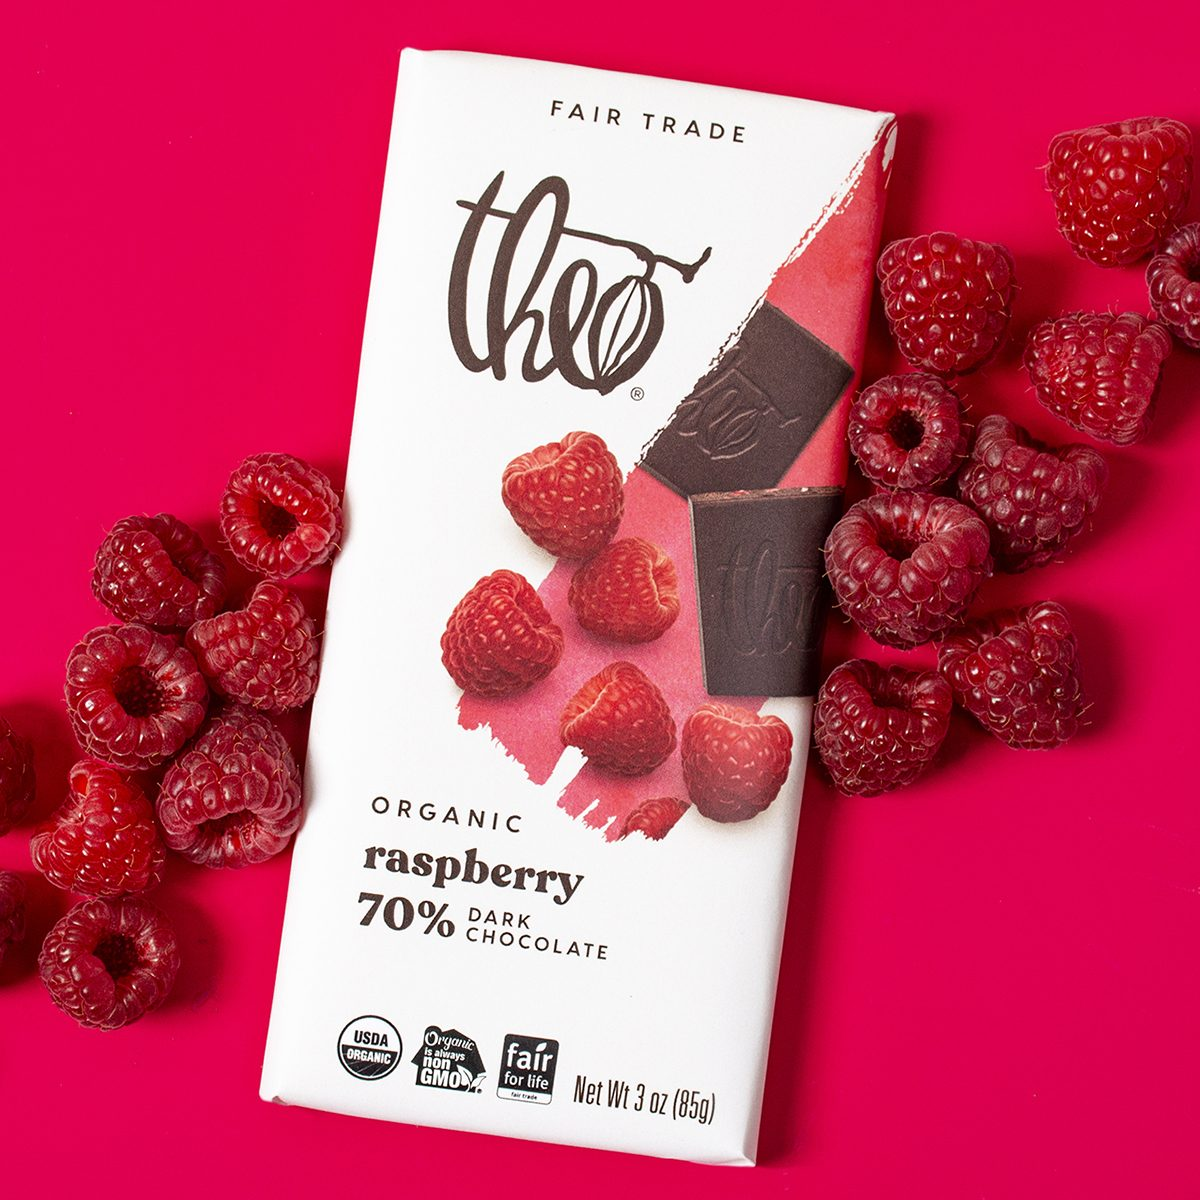 Raspberry 70% Dark Chocolate